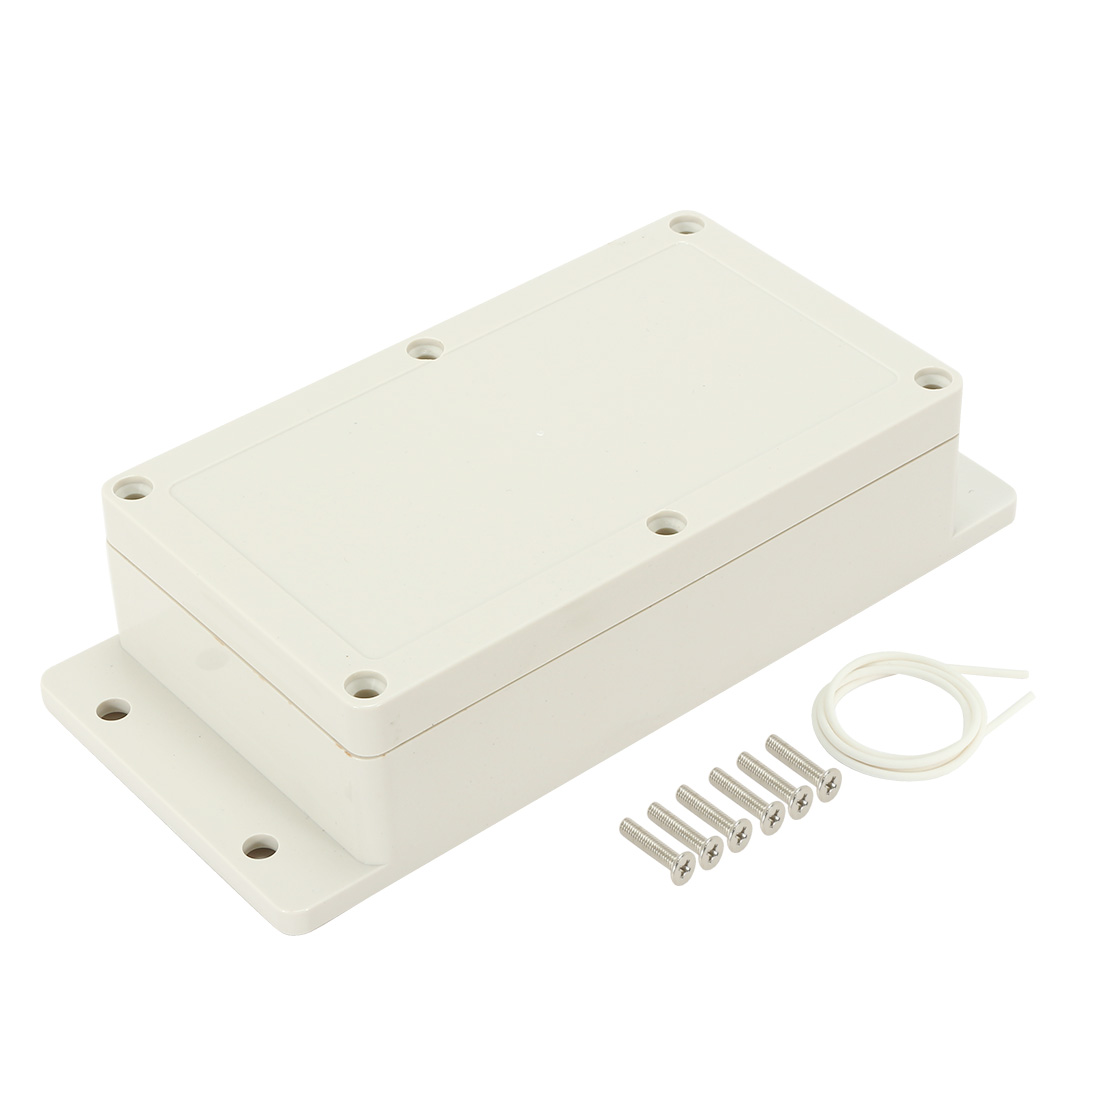 "6.2""x3.54""x1.8"" ABS Junction Box Universal Enclosure w Fixed Ear"